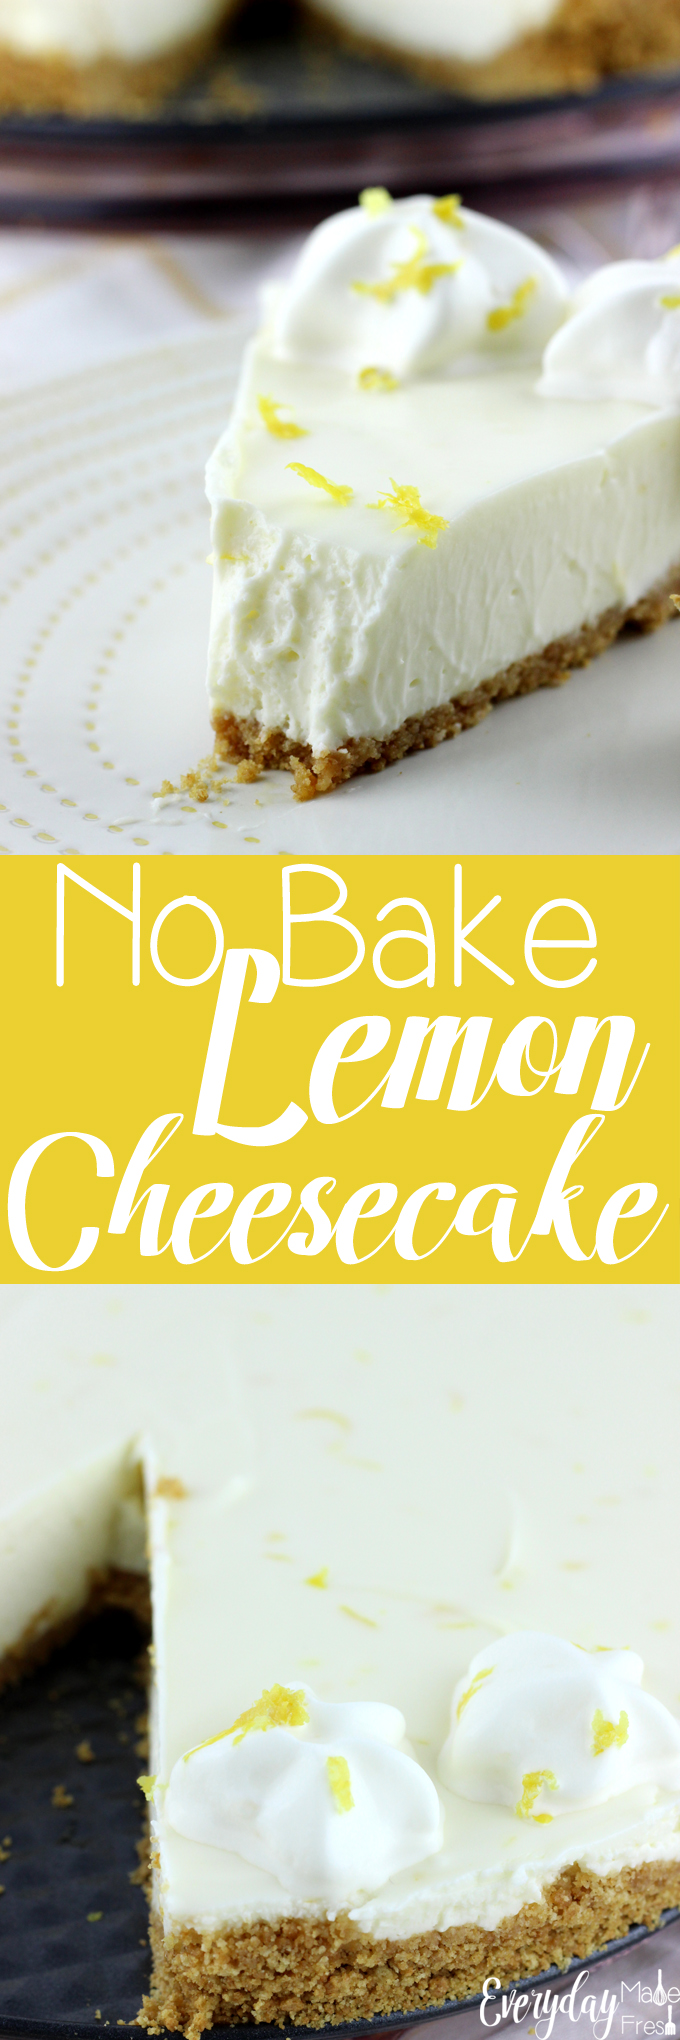 This No Bake Lemon Cheesecake is the perfect balance of sweet and tangy. It's the perfect treat to welcome spring and summer! | EverydayMadeFresh.com